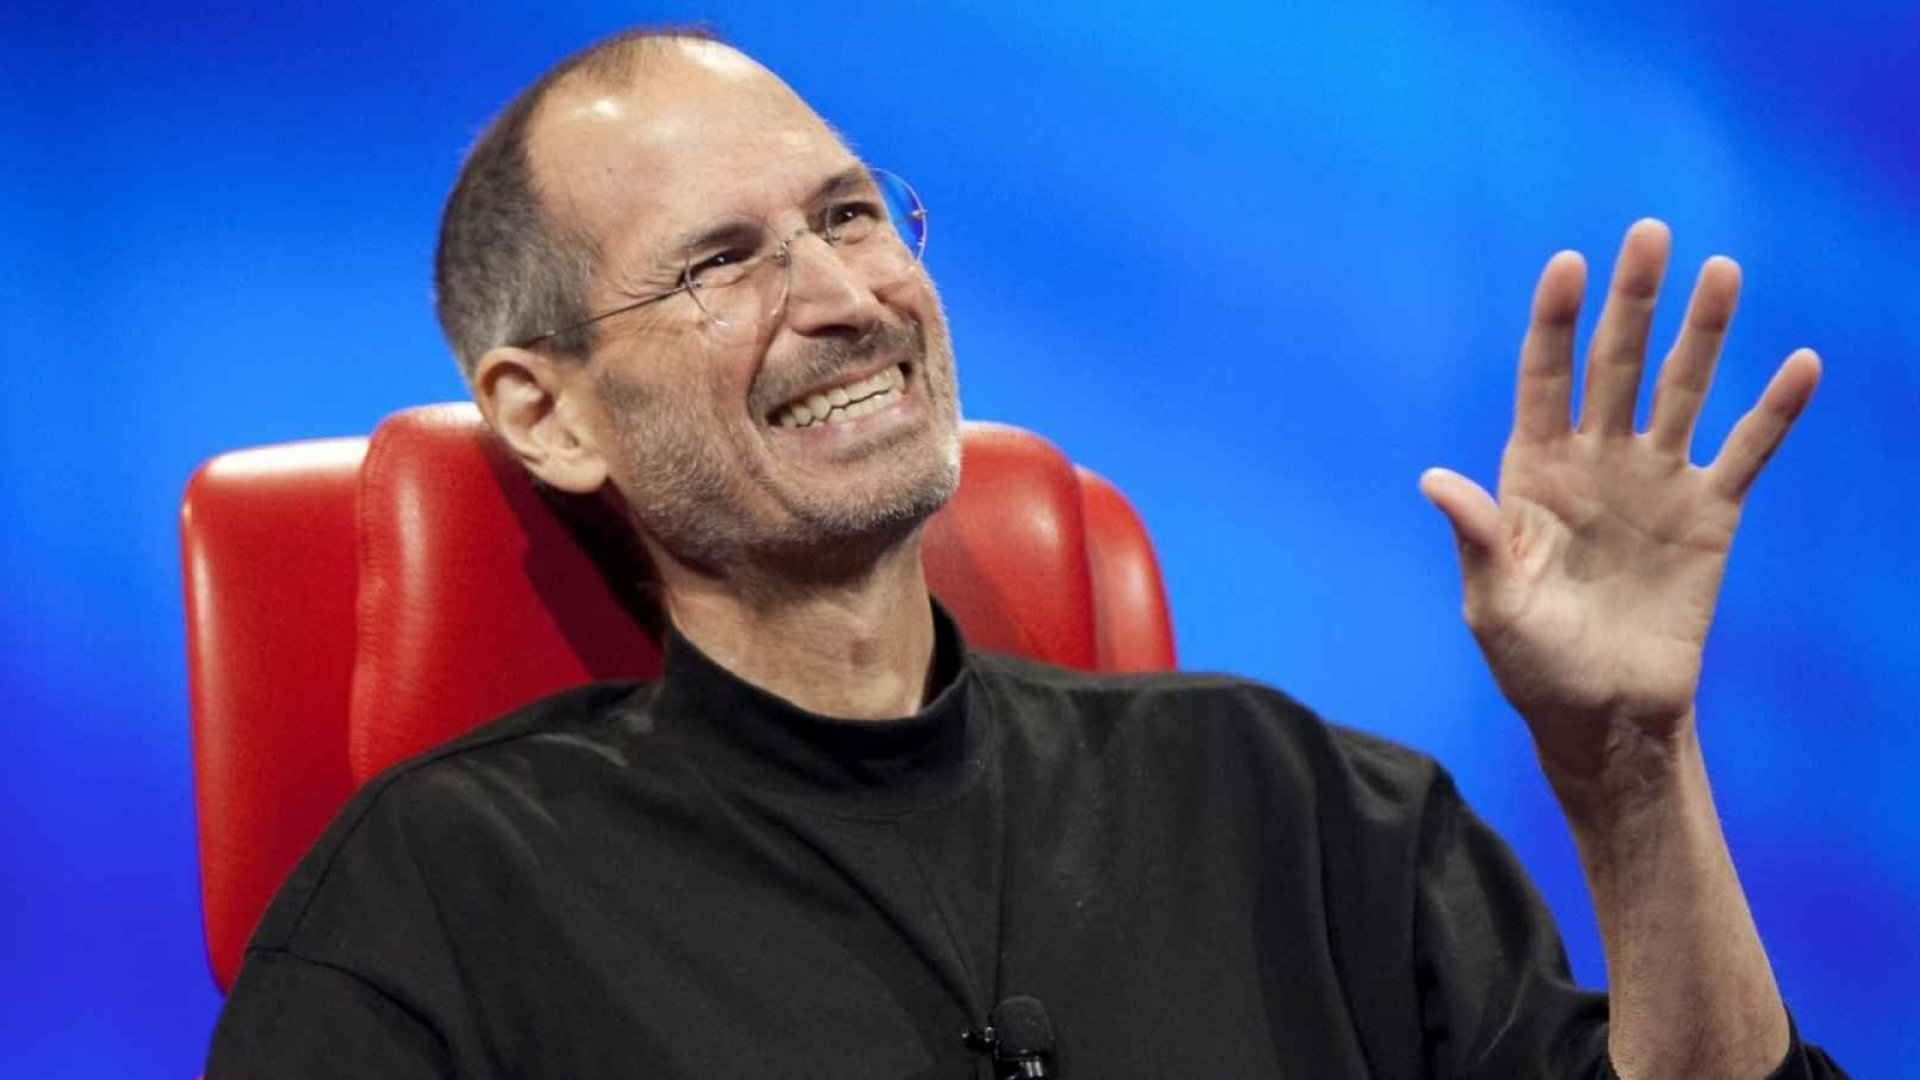 3 Really Surprising Things You Didn't Know About Steve Jobs